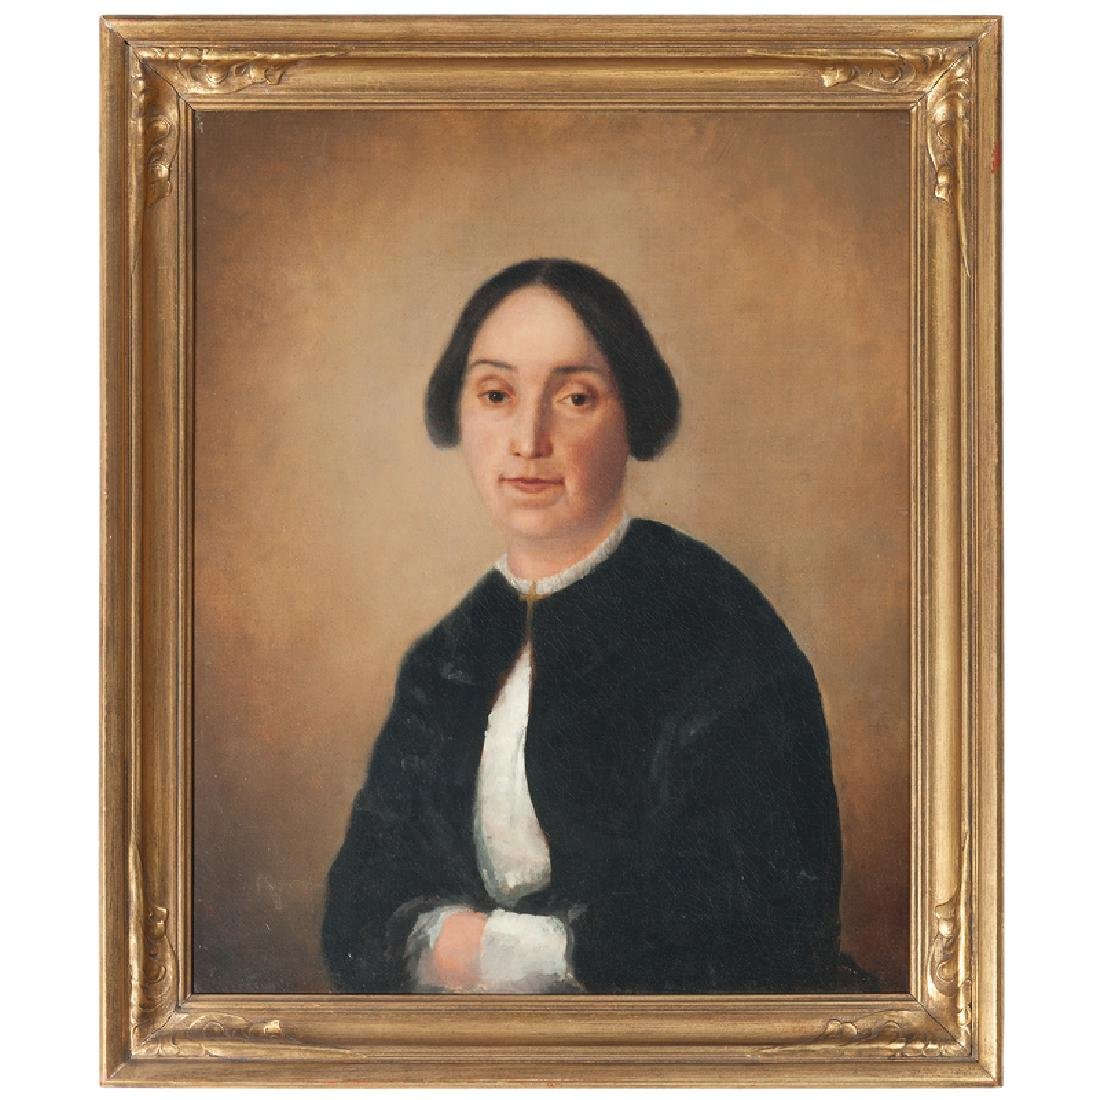 American Portrait of a Woman